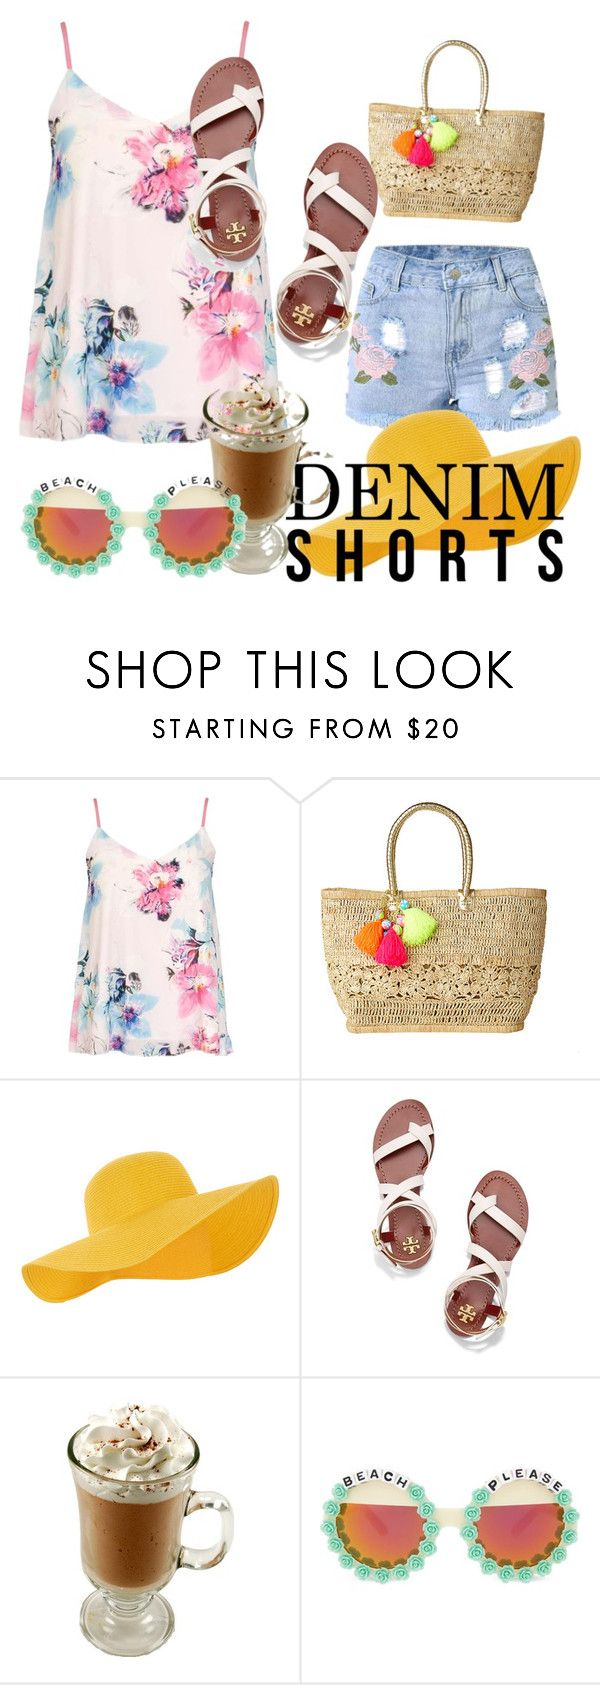 """""""Denim shorts"""" by veronika-andrianova ❤ liked on Polyvore featuring Dorothy Perkins, Lilly Pulitzer, Accessorize, Tory Burch, Rad+Refined, jeanshorts, denimshorts and cutoffs"""